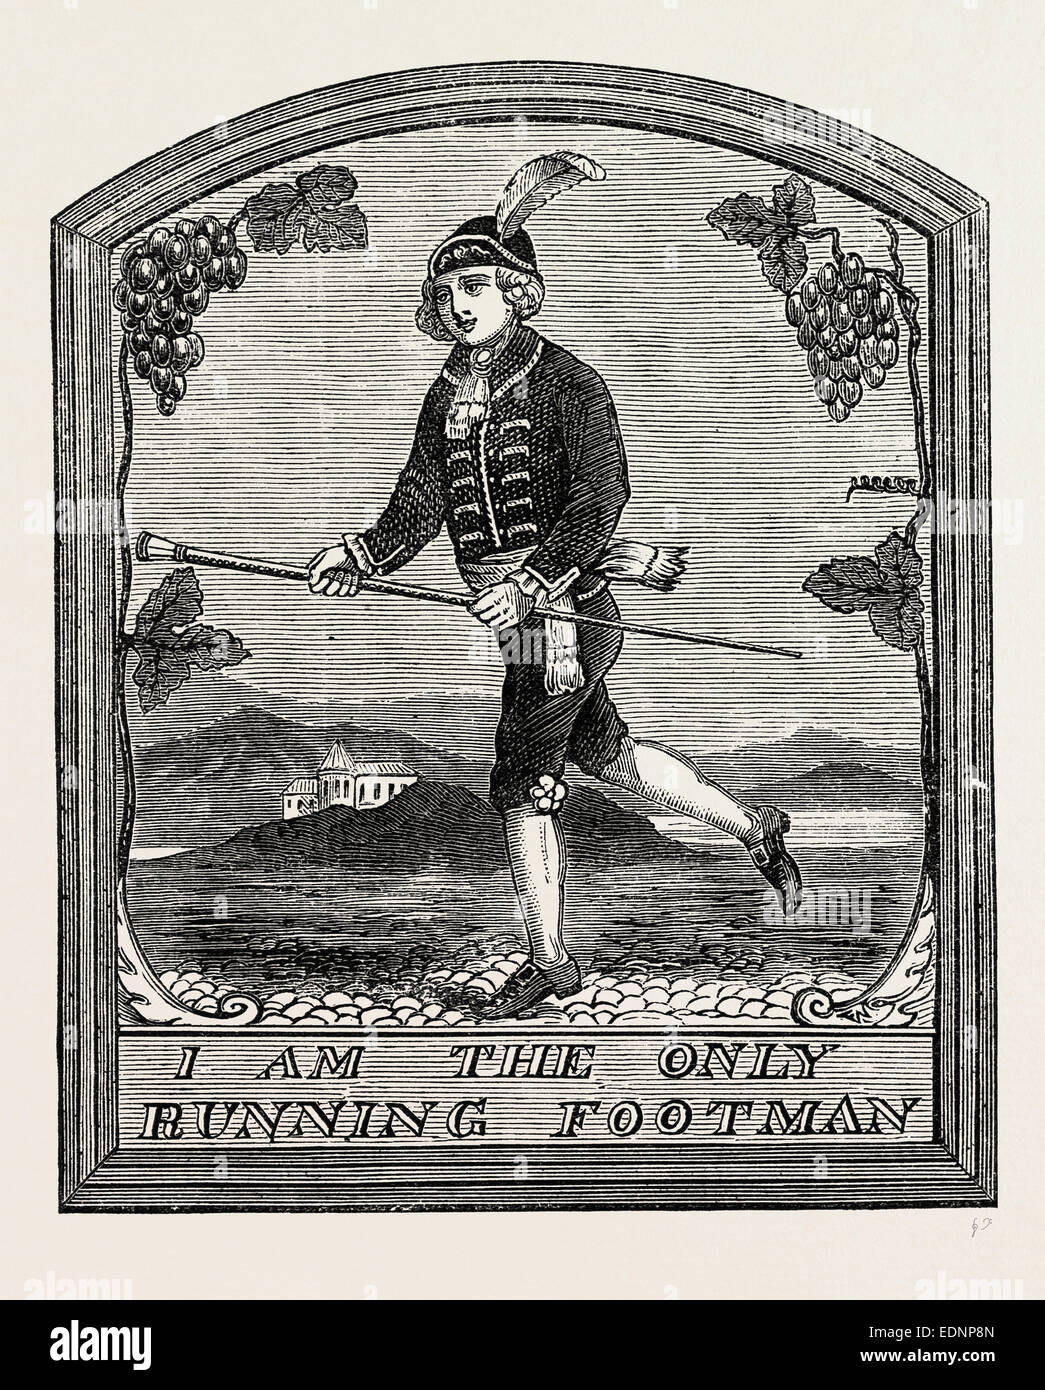 """THE SIGN OF """"THE RUNNING FOOTMAN."""" London, UK, 19th century engraving Stock Photo"""